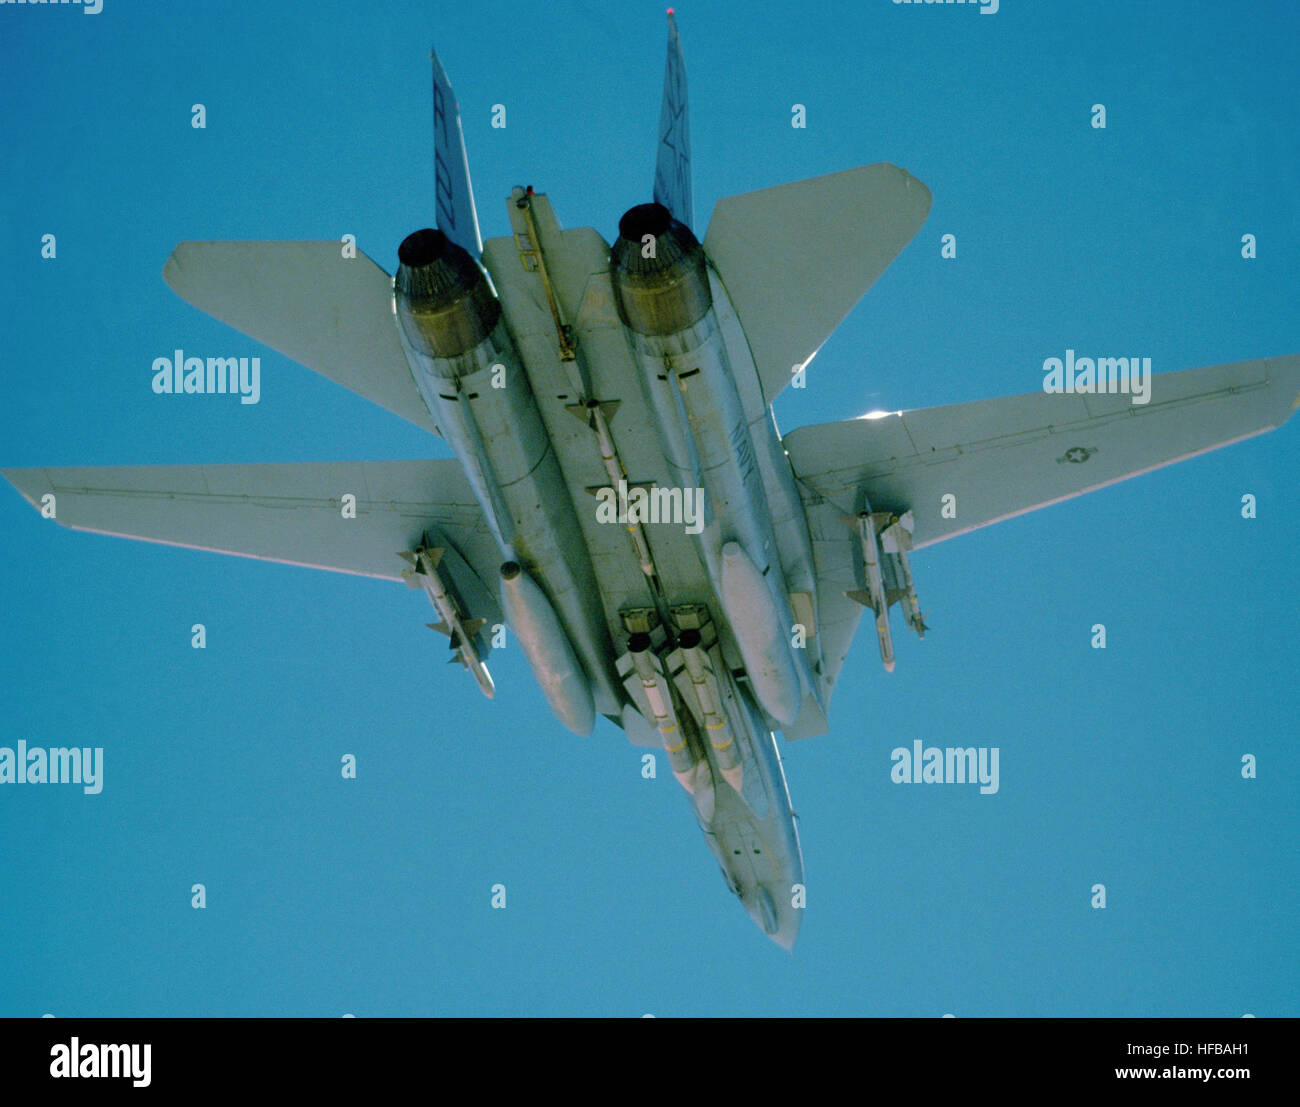 A view of the underside of a Fighter Squadron 33 (VF-33) F-14A Tomcat aircraft as it returns to the aircraft carrier - Stock Image